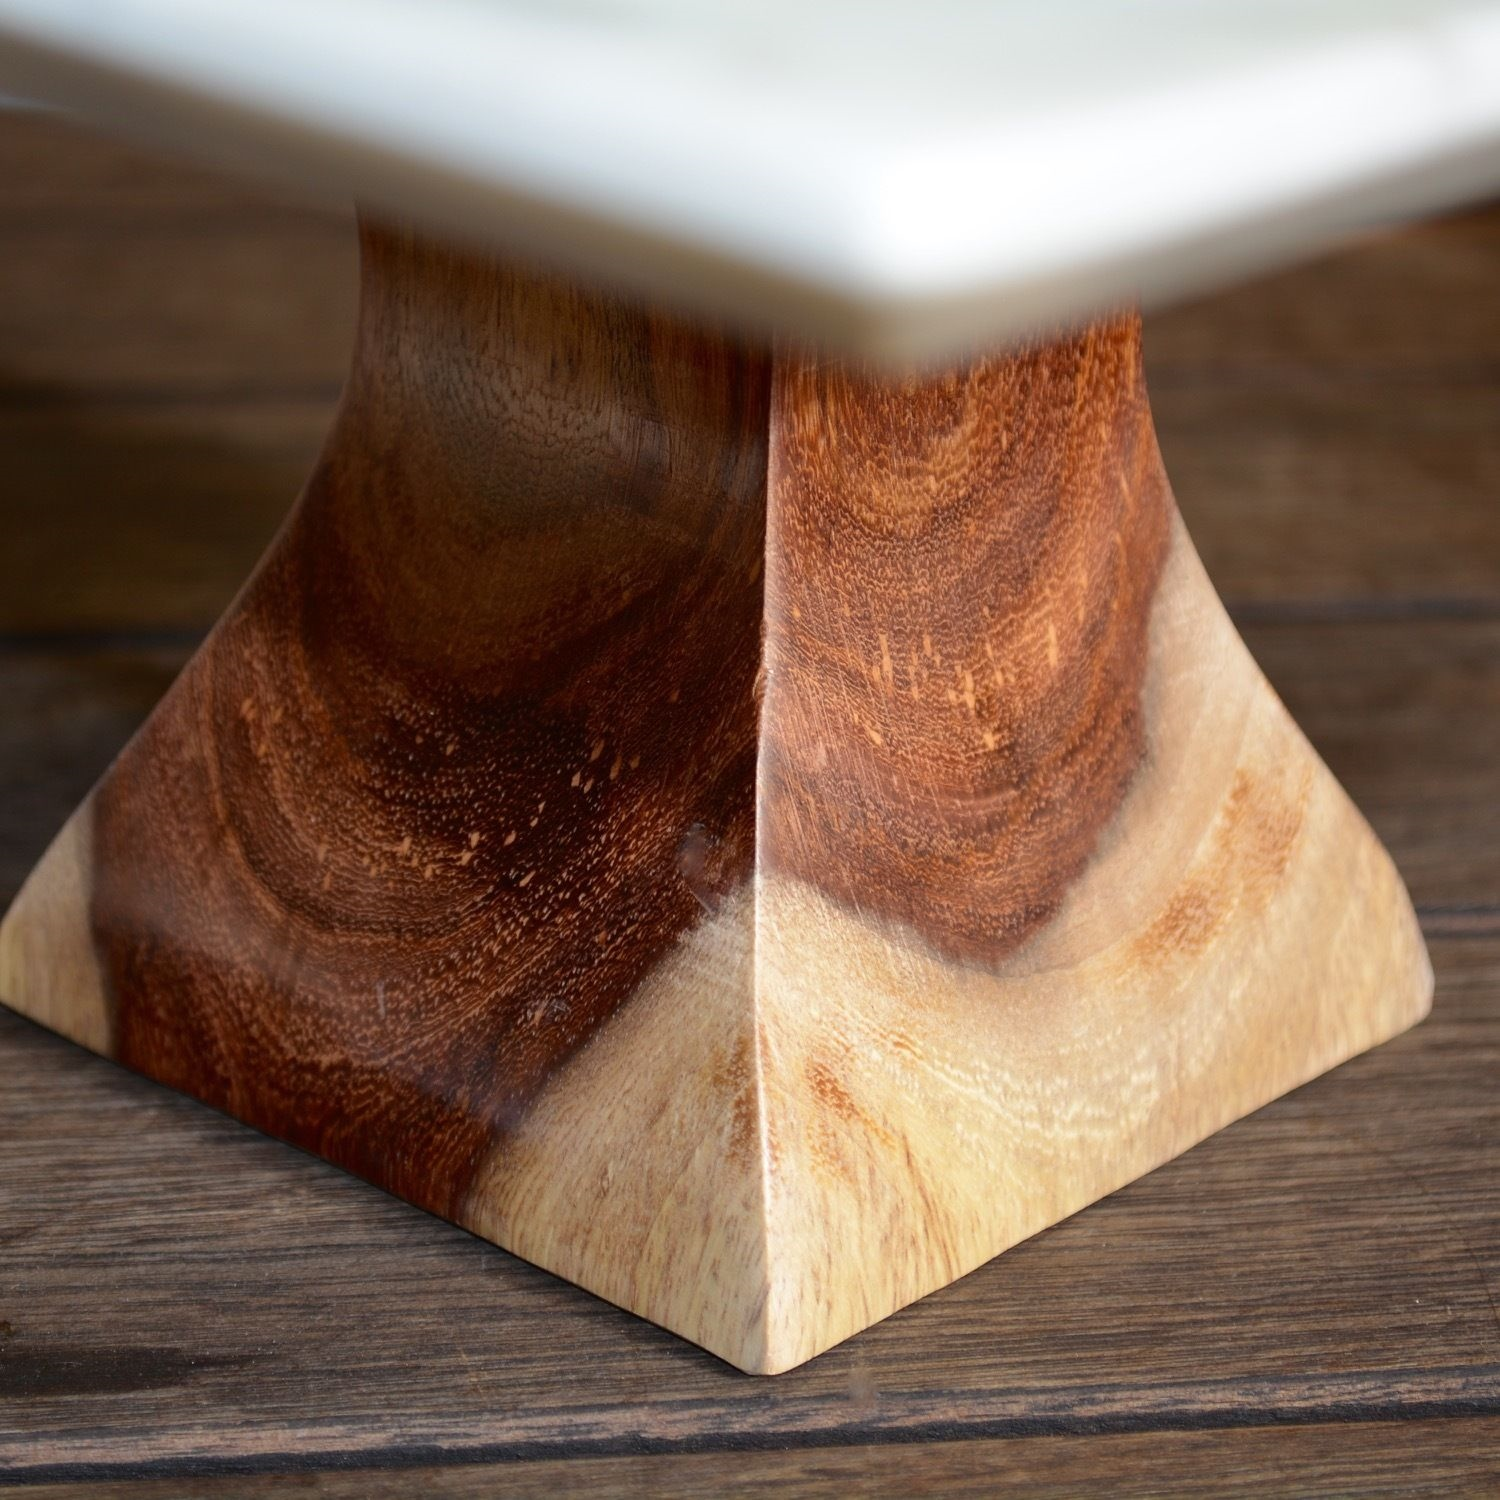 Marble Cake Stand Square Wooden Base Display Wedding Gift Decor Candle Holder